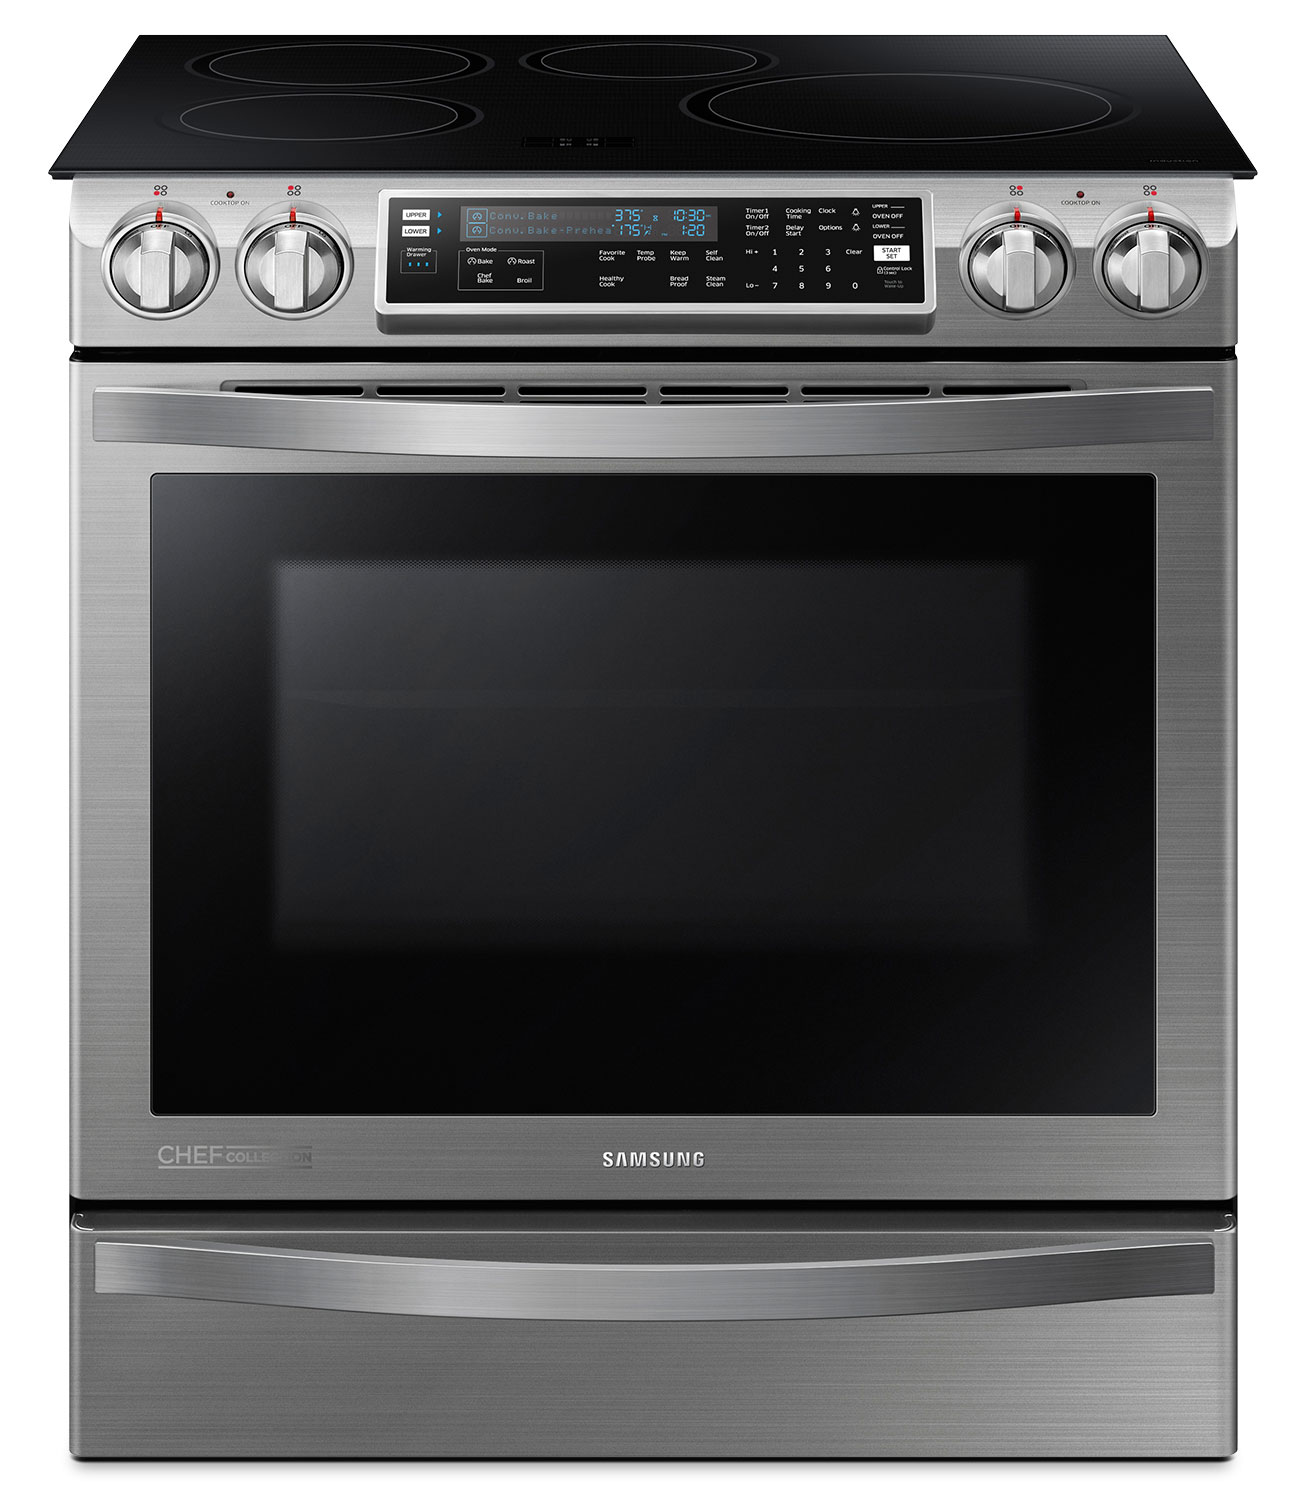 Cooking Products - Samsung Stainless Steel Slide-In Induction Convection Range - NE58H9970WS